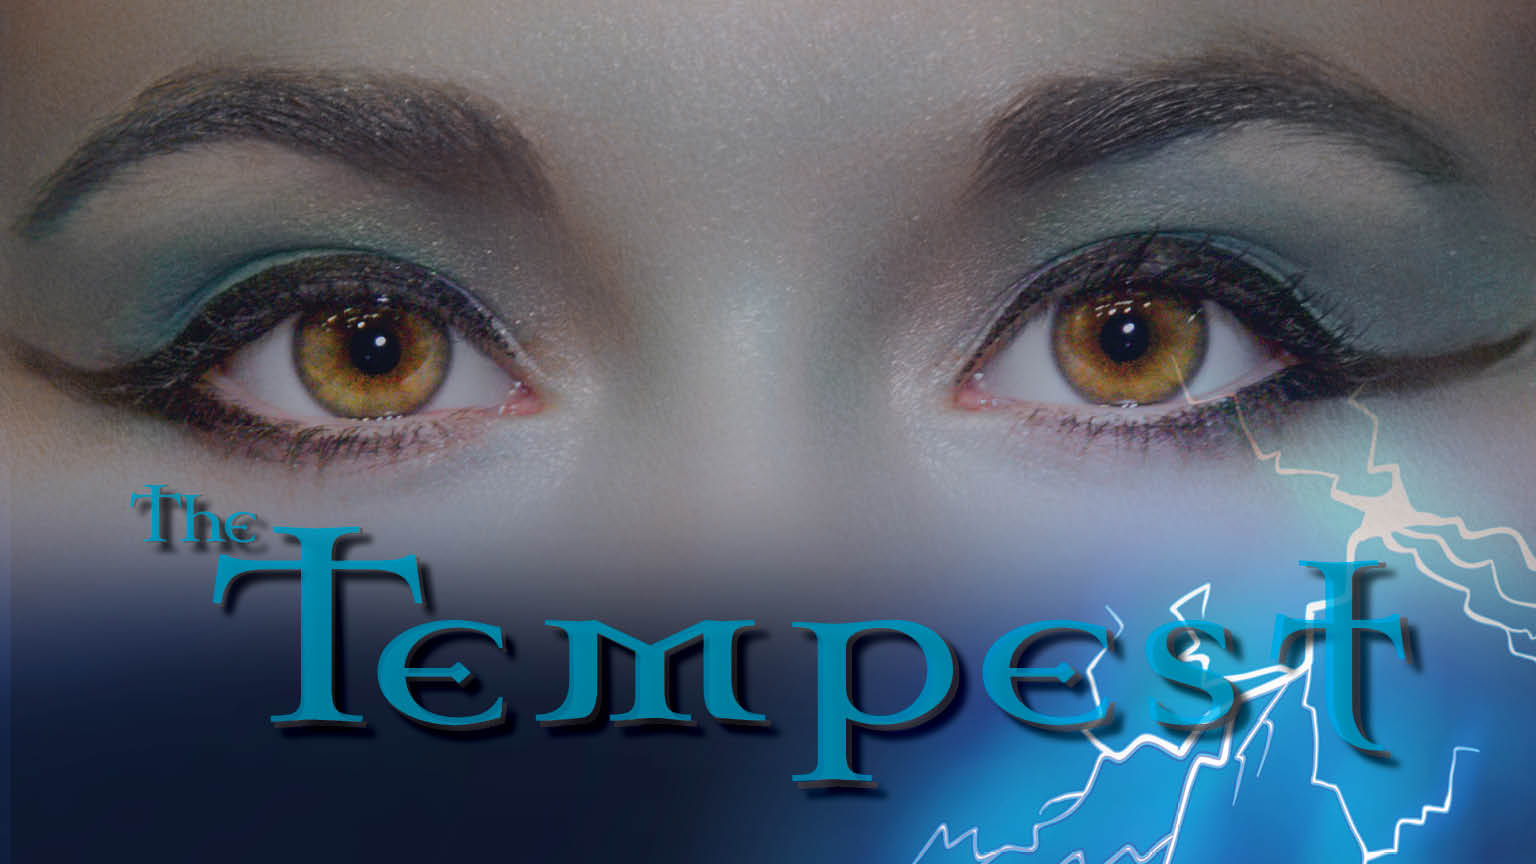 Playbill of The Tempest. Photo of a women's eyes and a man standing on a rock in a lightning storm